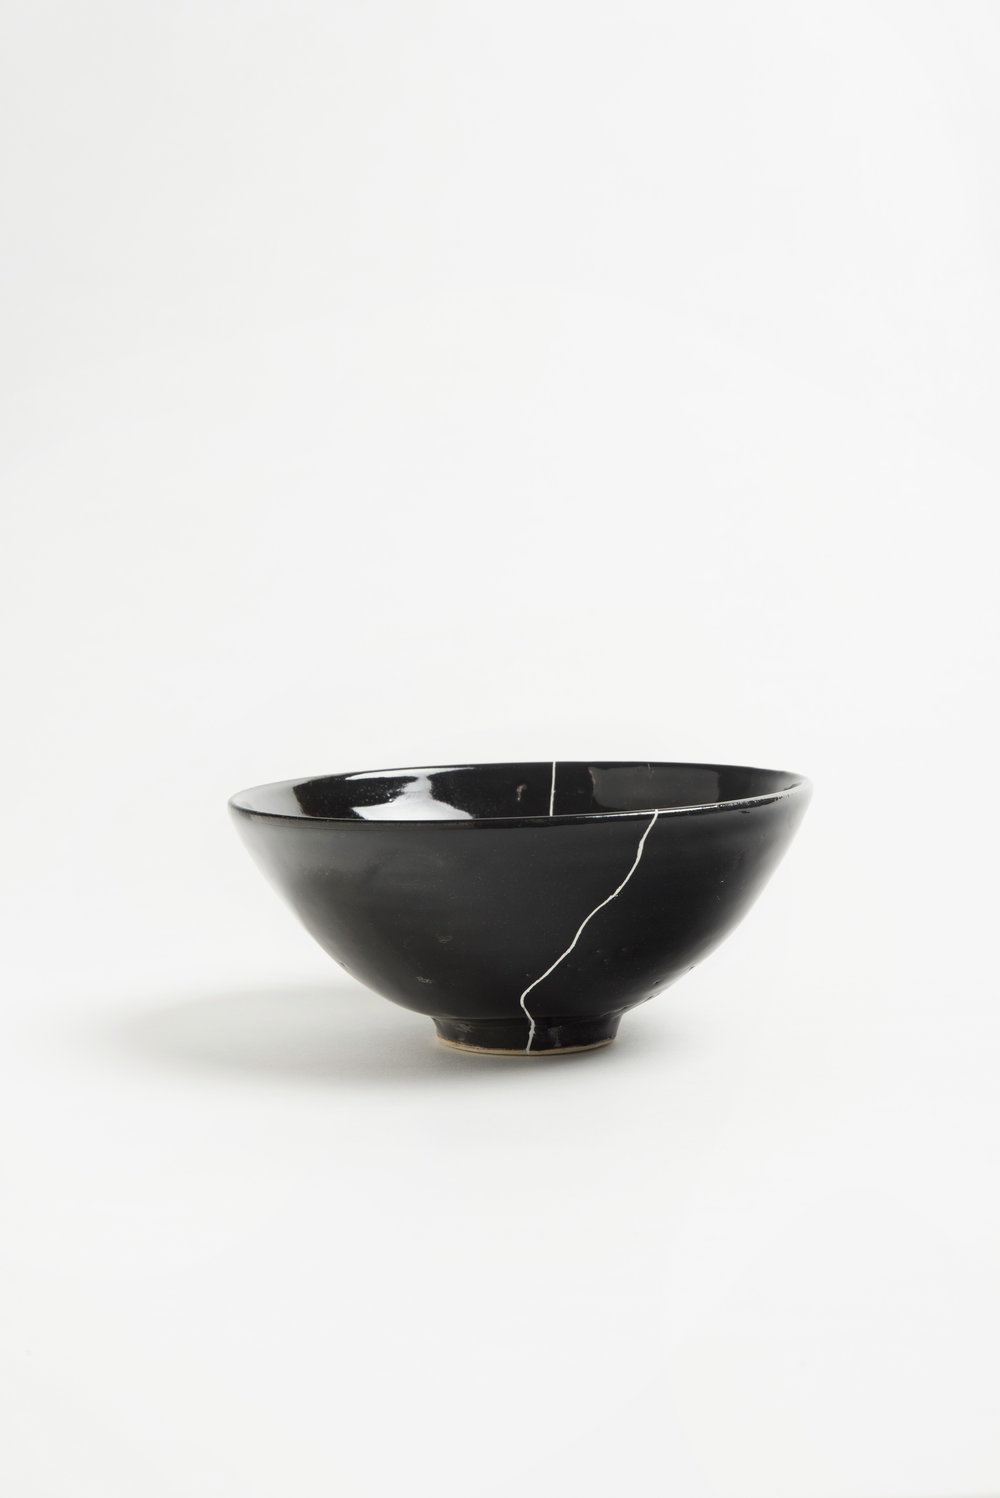 black-fracture-series-bowl-romy-northover-ceramics-the-garnered-42.jpg